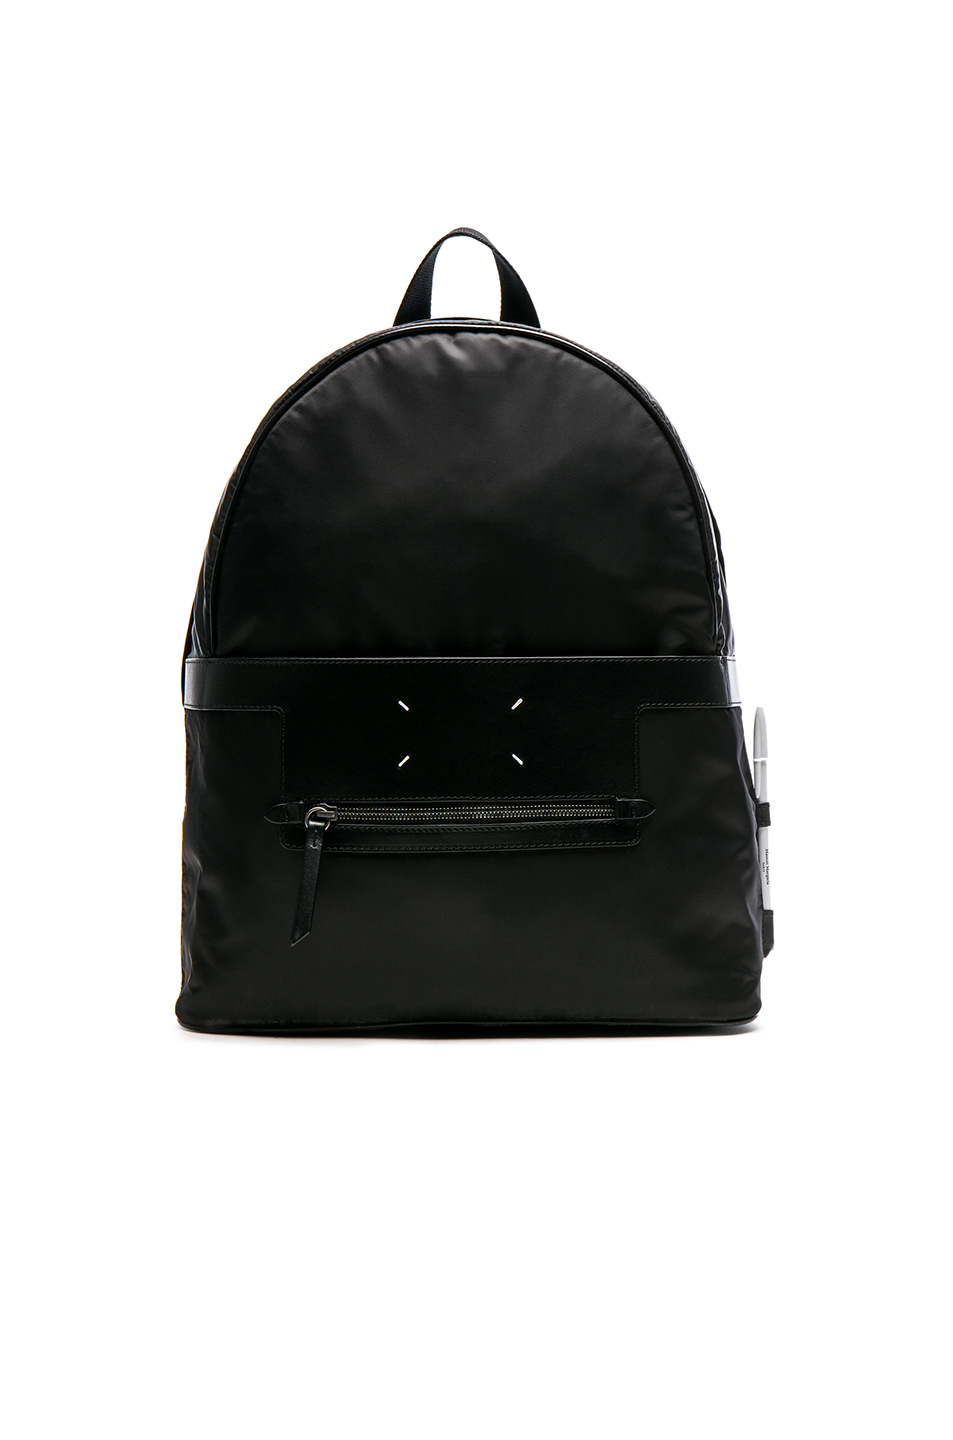 Maison Margiela Nylon Backpack in Black